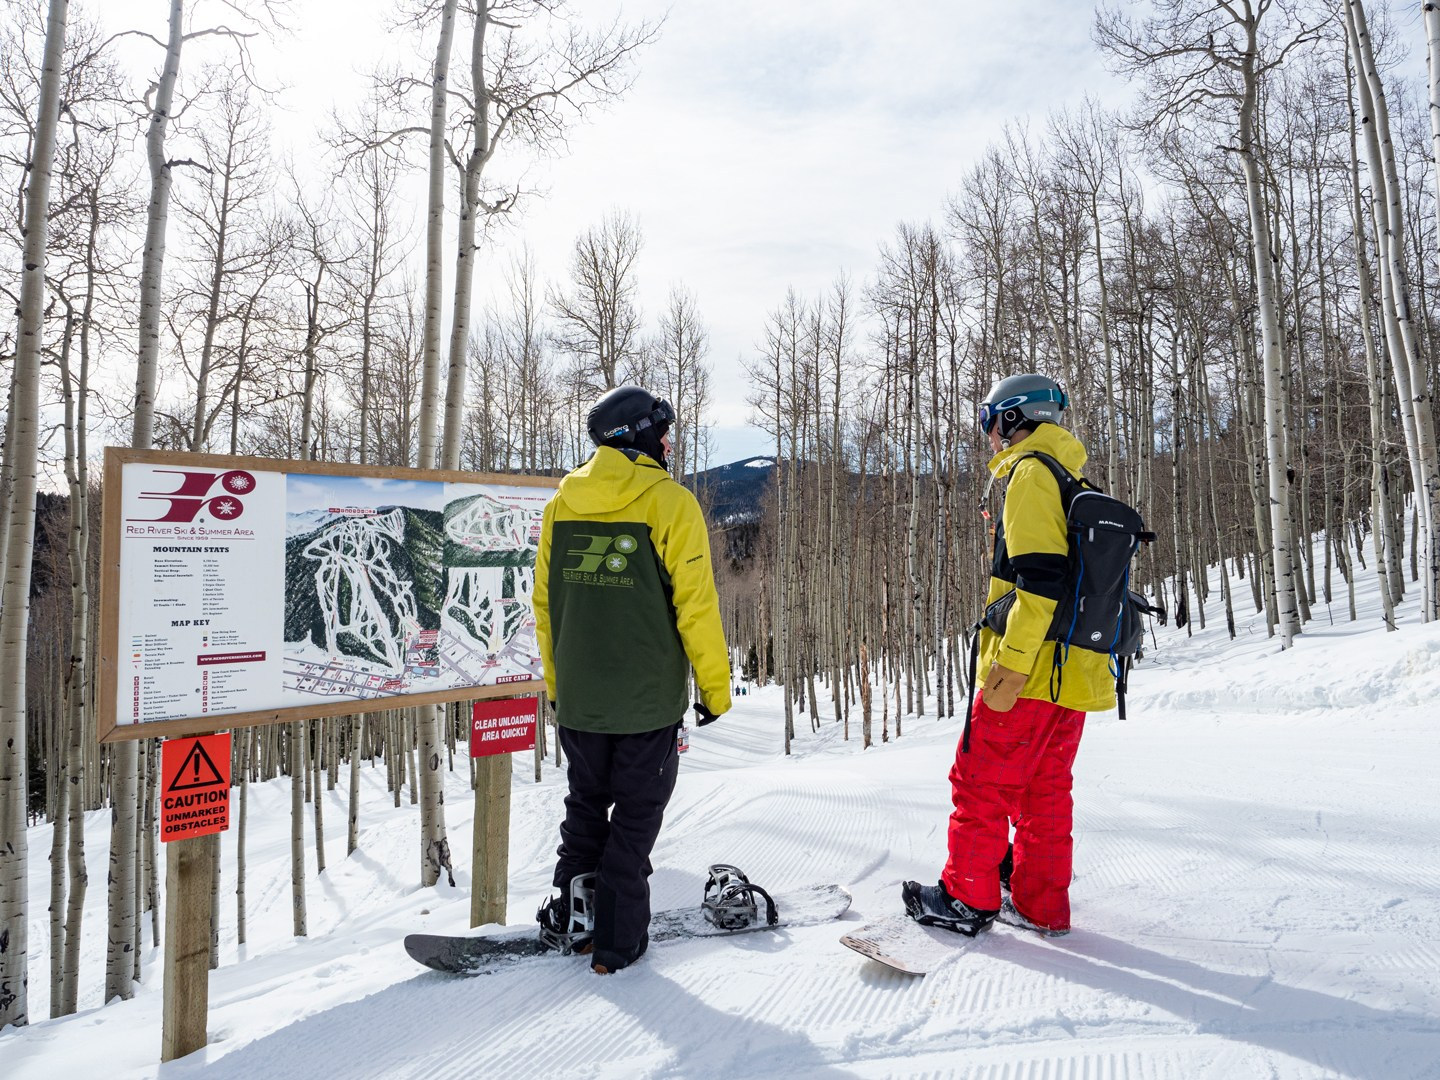 Snowboarders on the backside of Red River Ski Resort